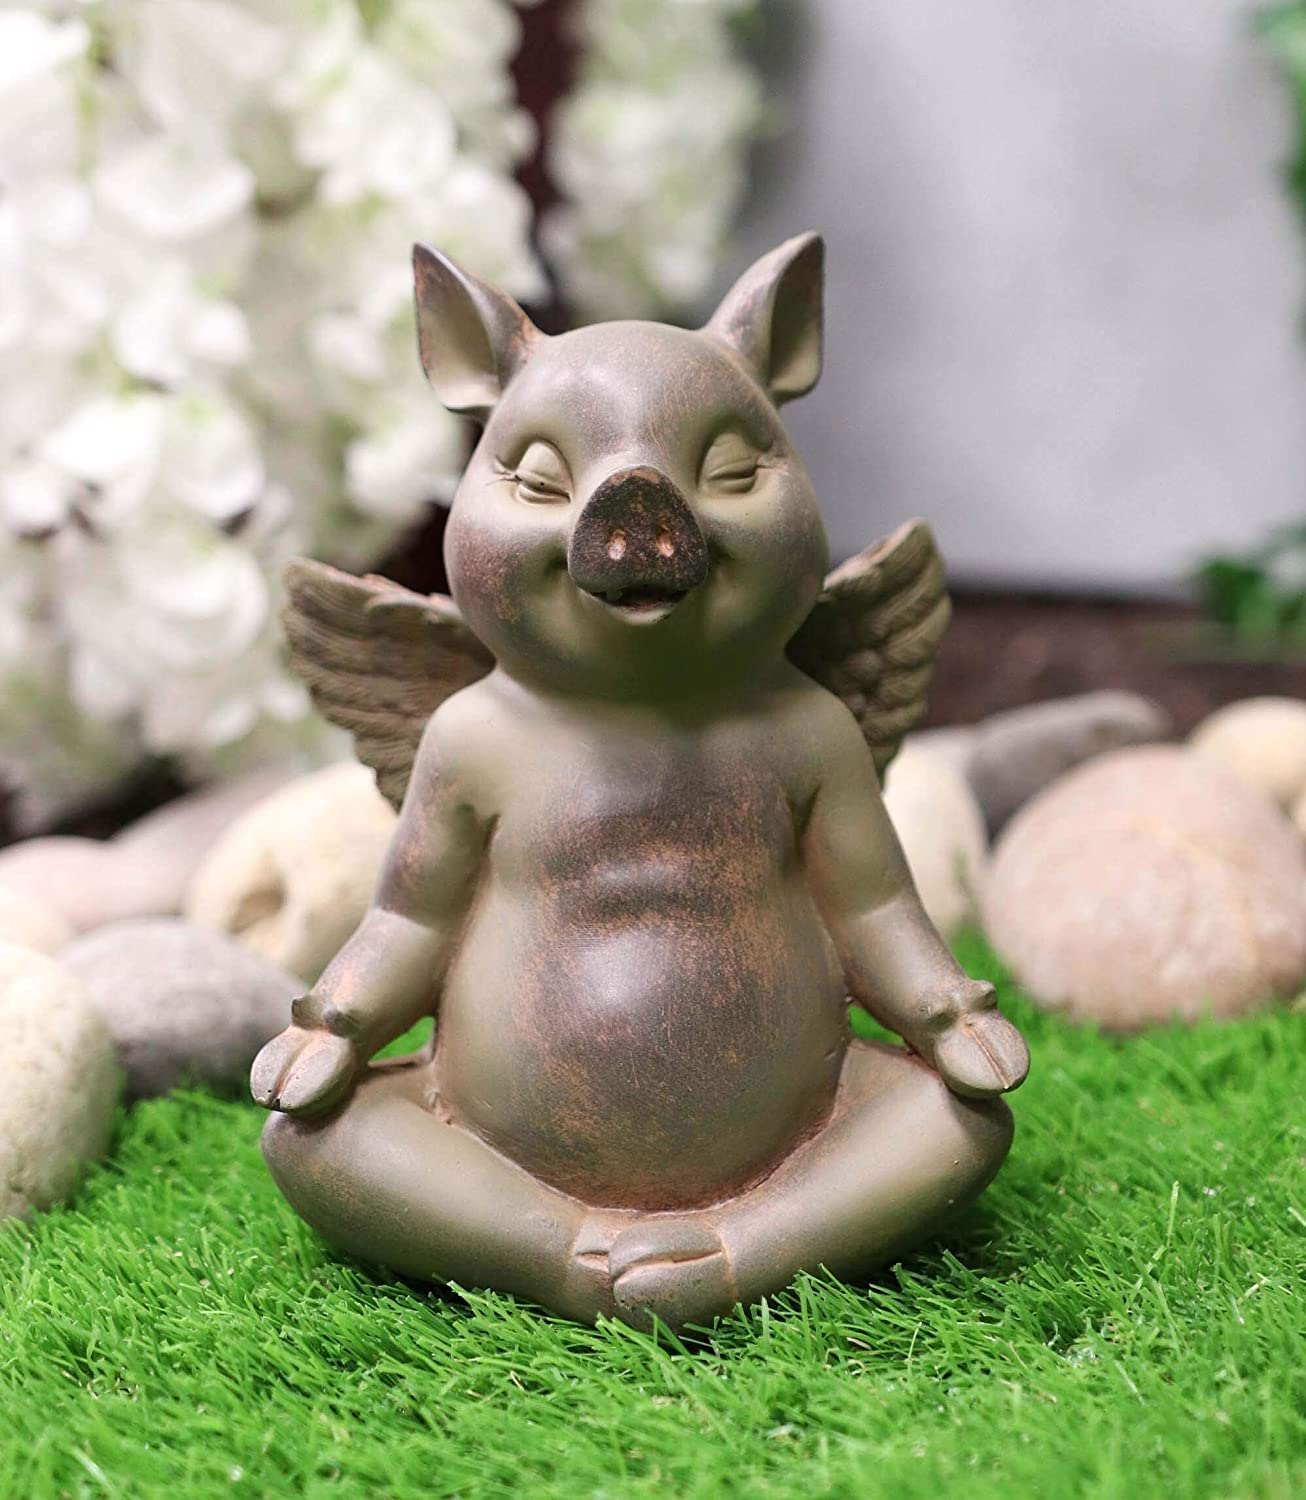 Ebros Peaceful Zen Yoga Flying Pig Hog Heavens Statue Rustic Country Piggy Piglet Porcine Pigs Fairy Garden Collectible Figurine (Padme Lotus Meditation Pose)